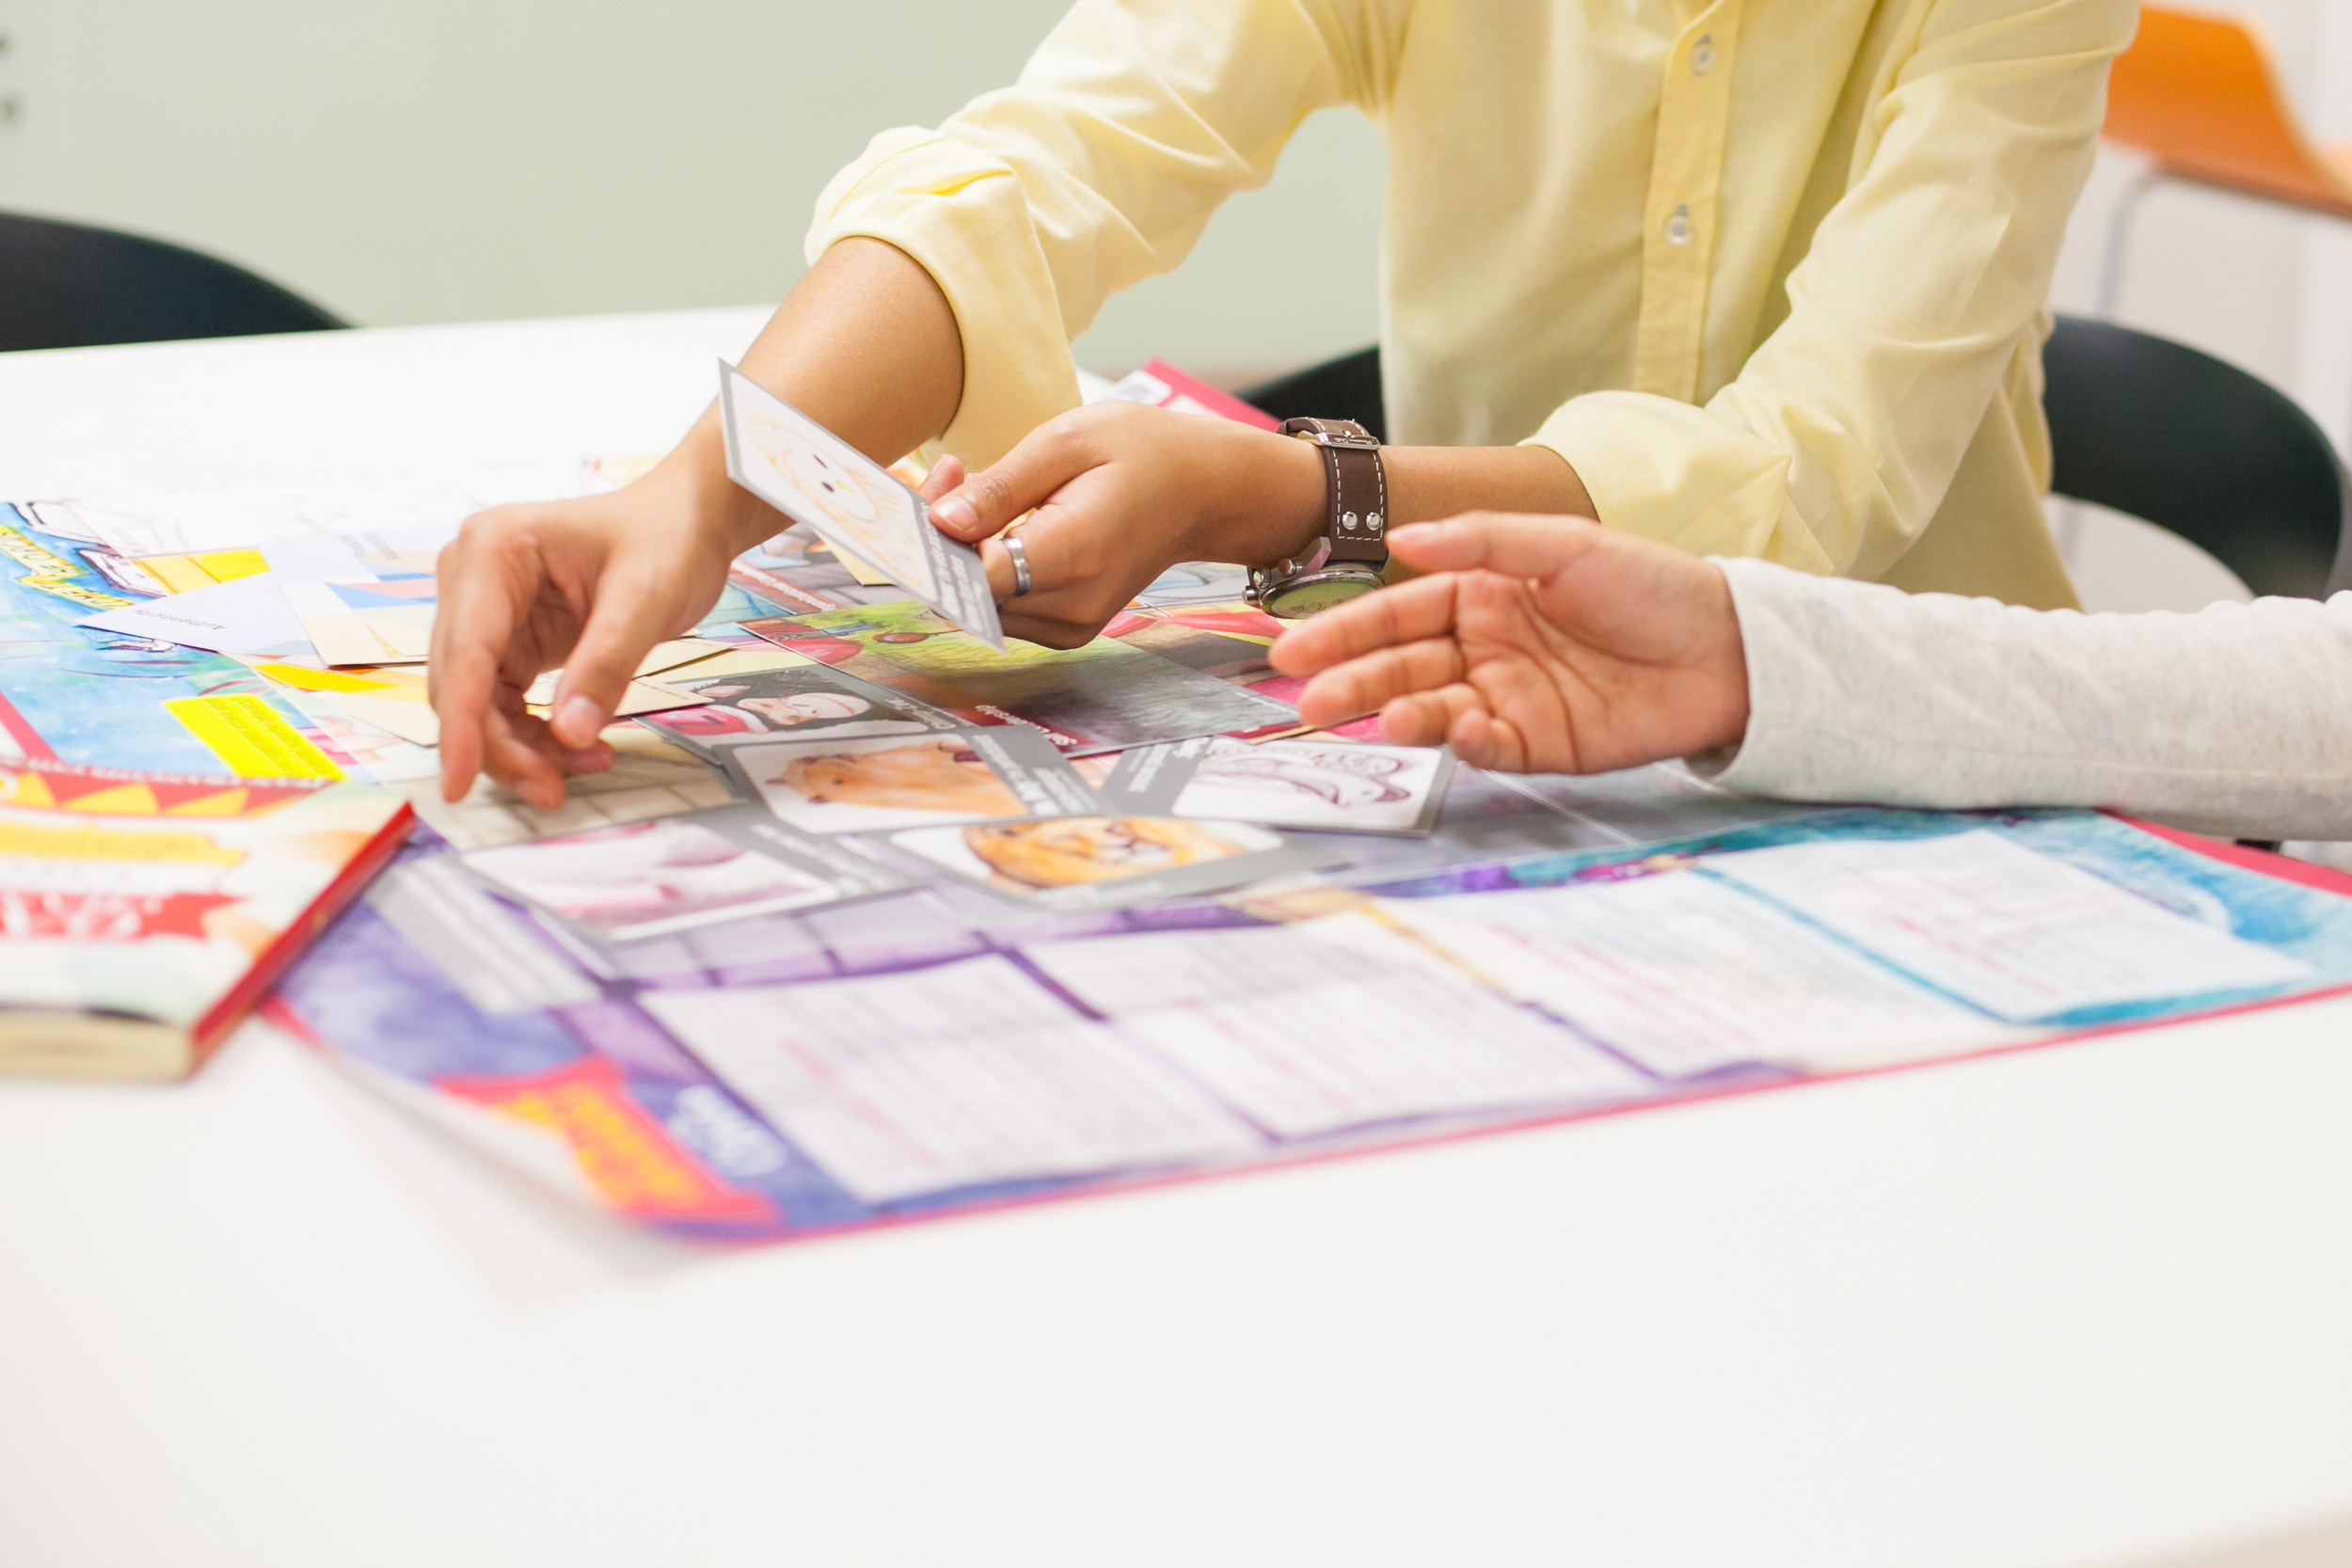 The board game helps leaders immediately apply insights from the book into real-life. It can be 'played' individually or in small teams of leaders.